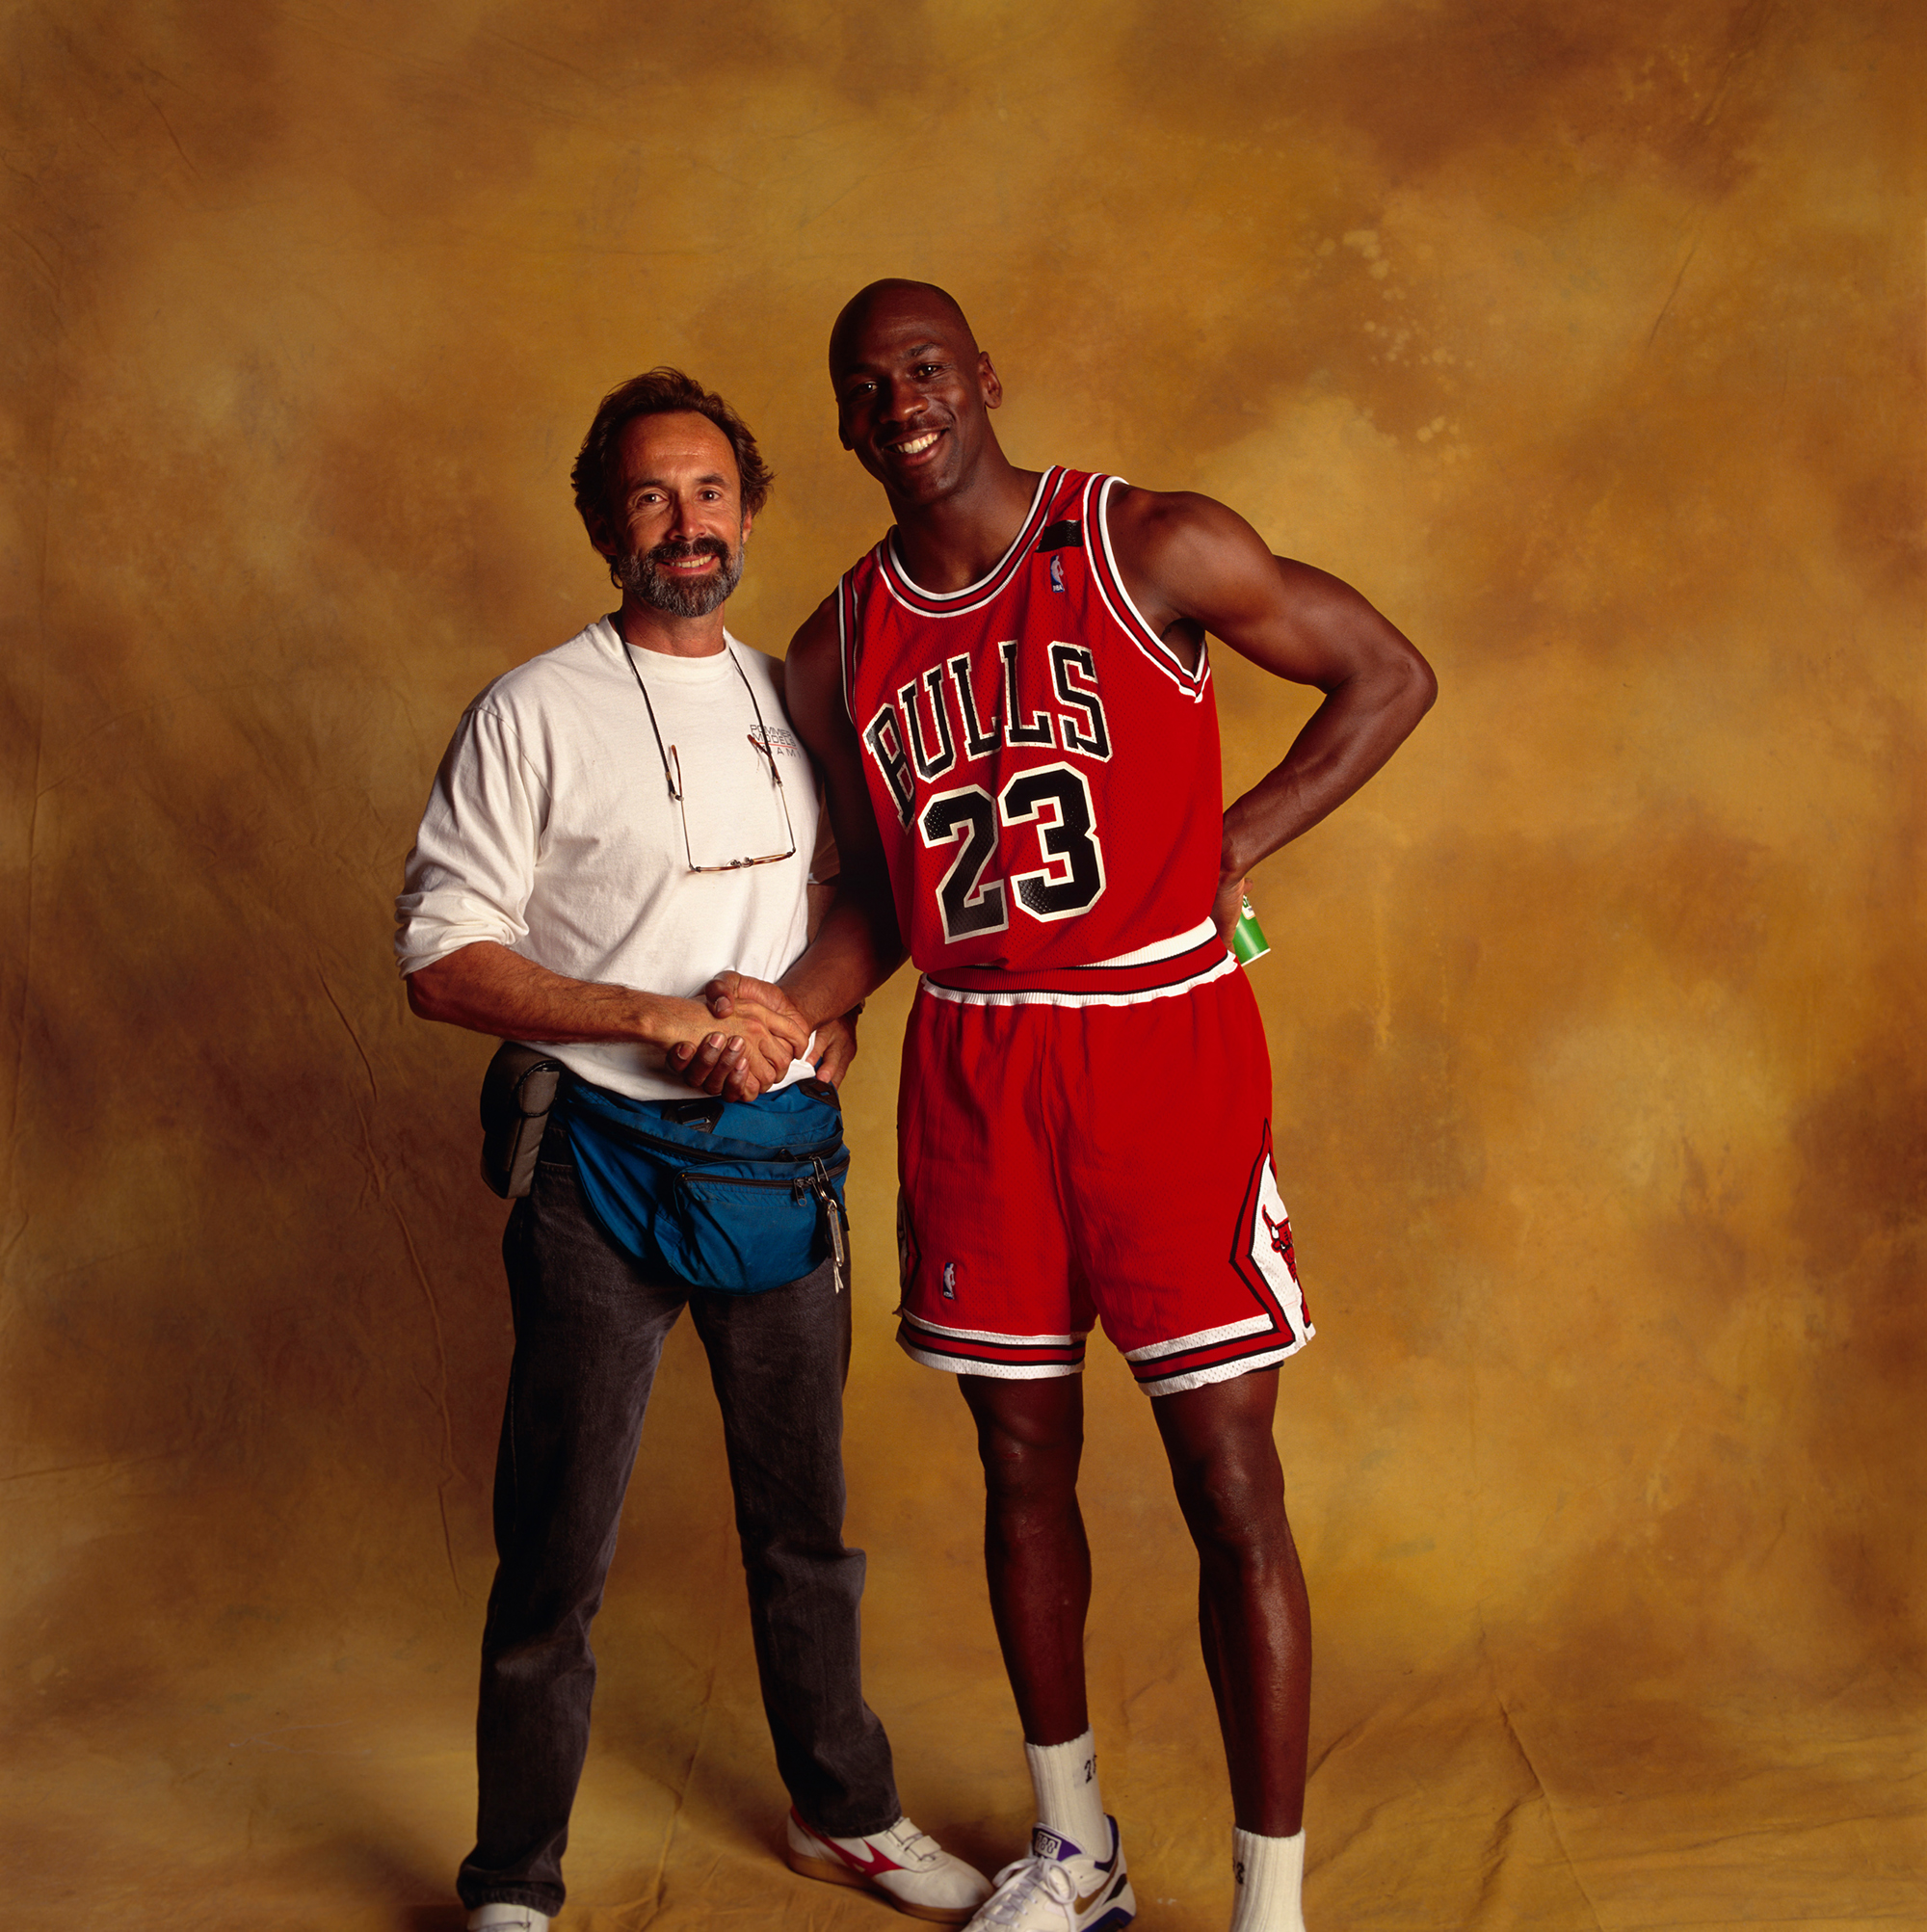 Walter Iooss Jr. & Michael Jordan,